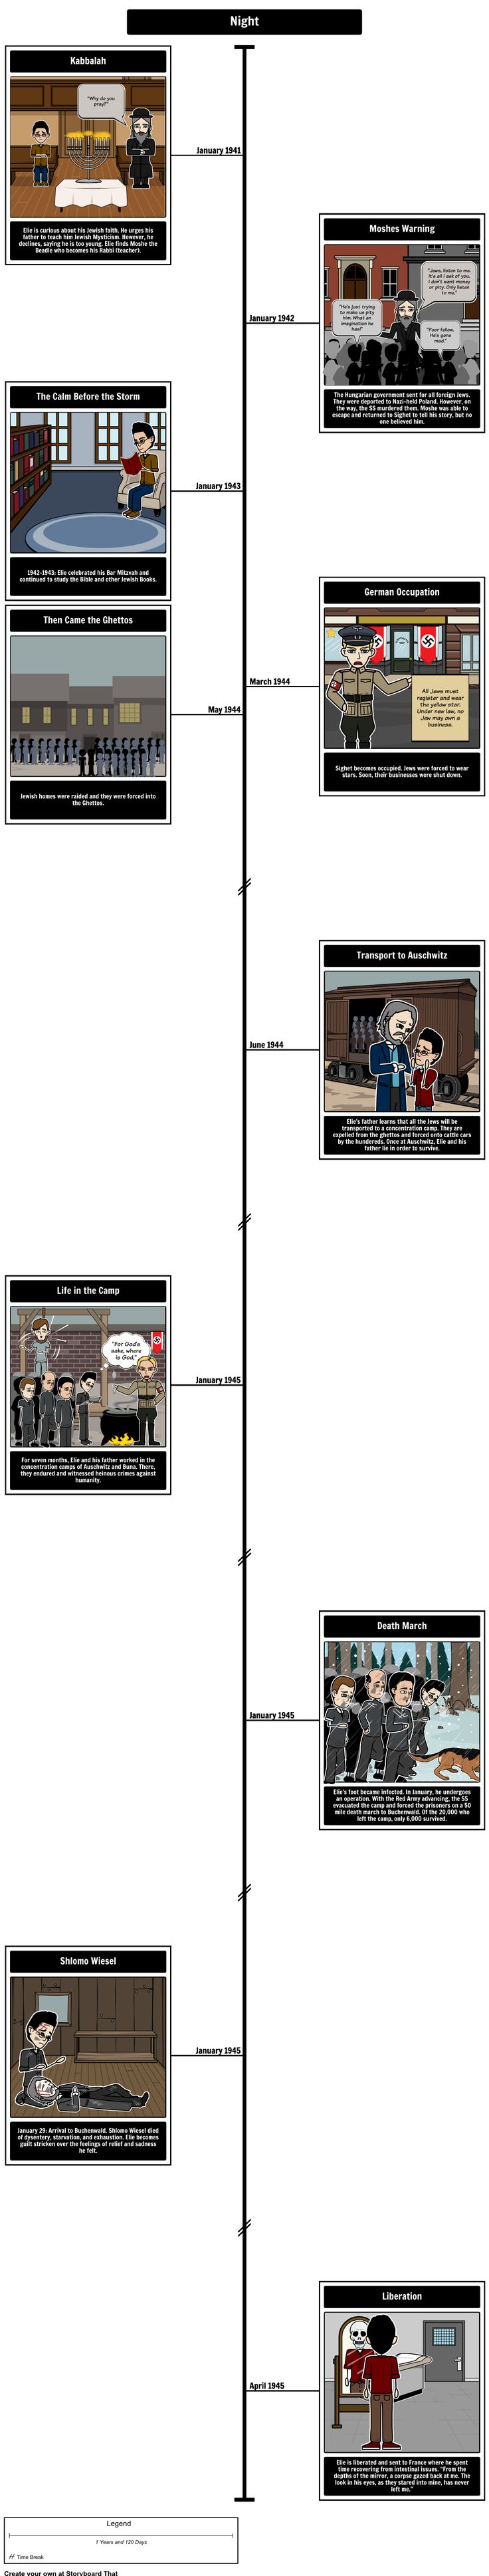 "Non-fiction and historical fiction can especially benefit from timelines. When reading a story that takes place in a historical setting or learning about authors, it is necessary to understand the context. A timeline can help establish important events and attitudes during a specific era. Here is an example of a timeline made using Storyboard That for Elie Wiesel's ""Night""."